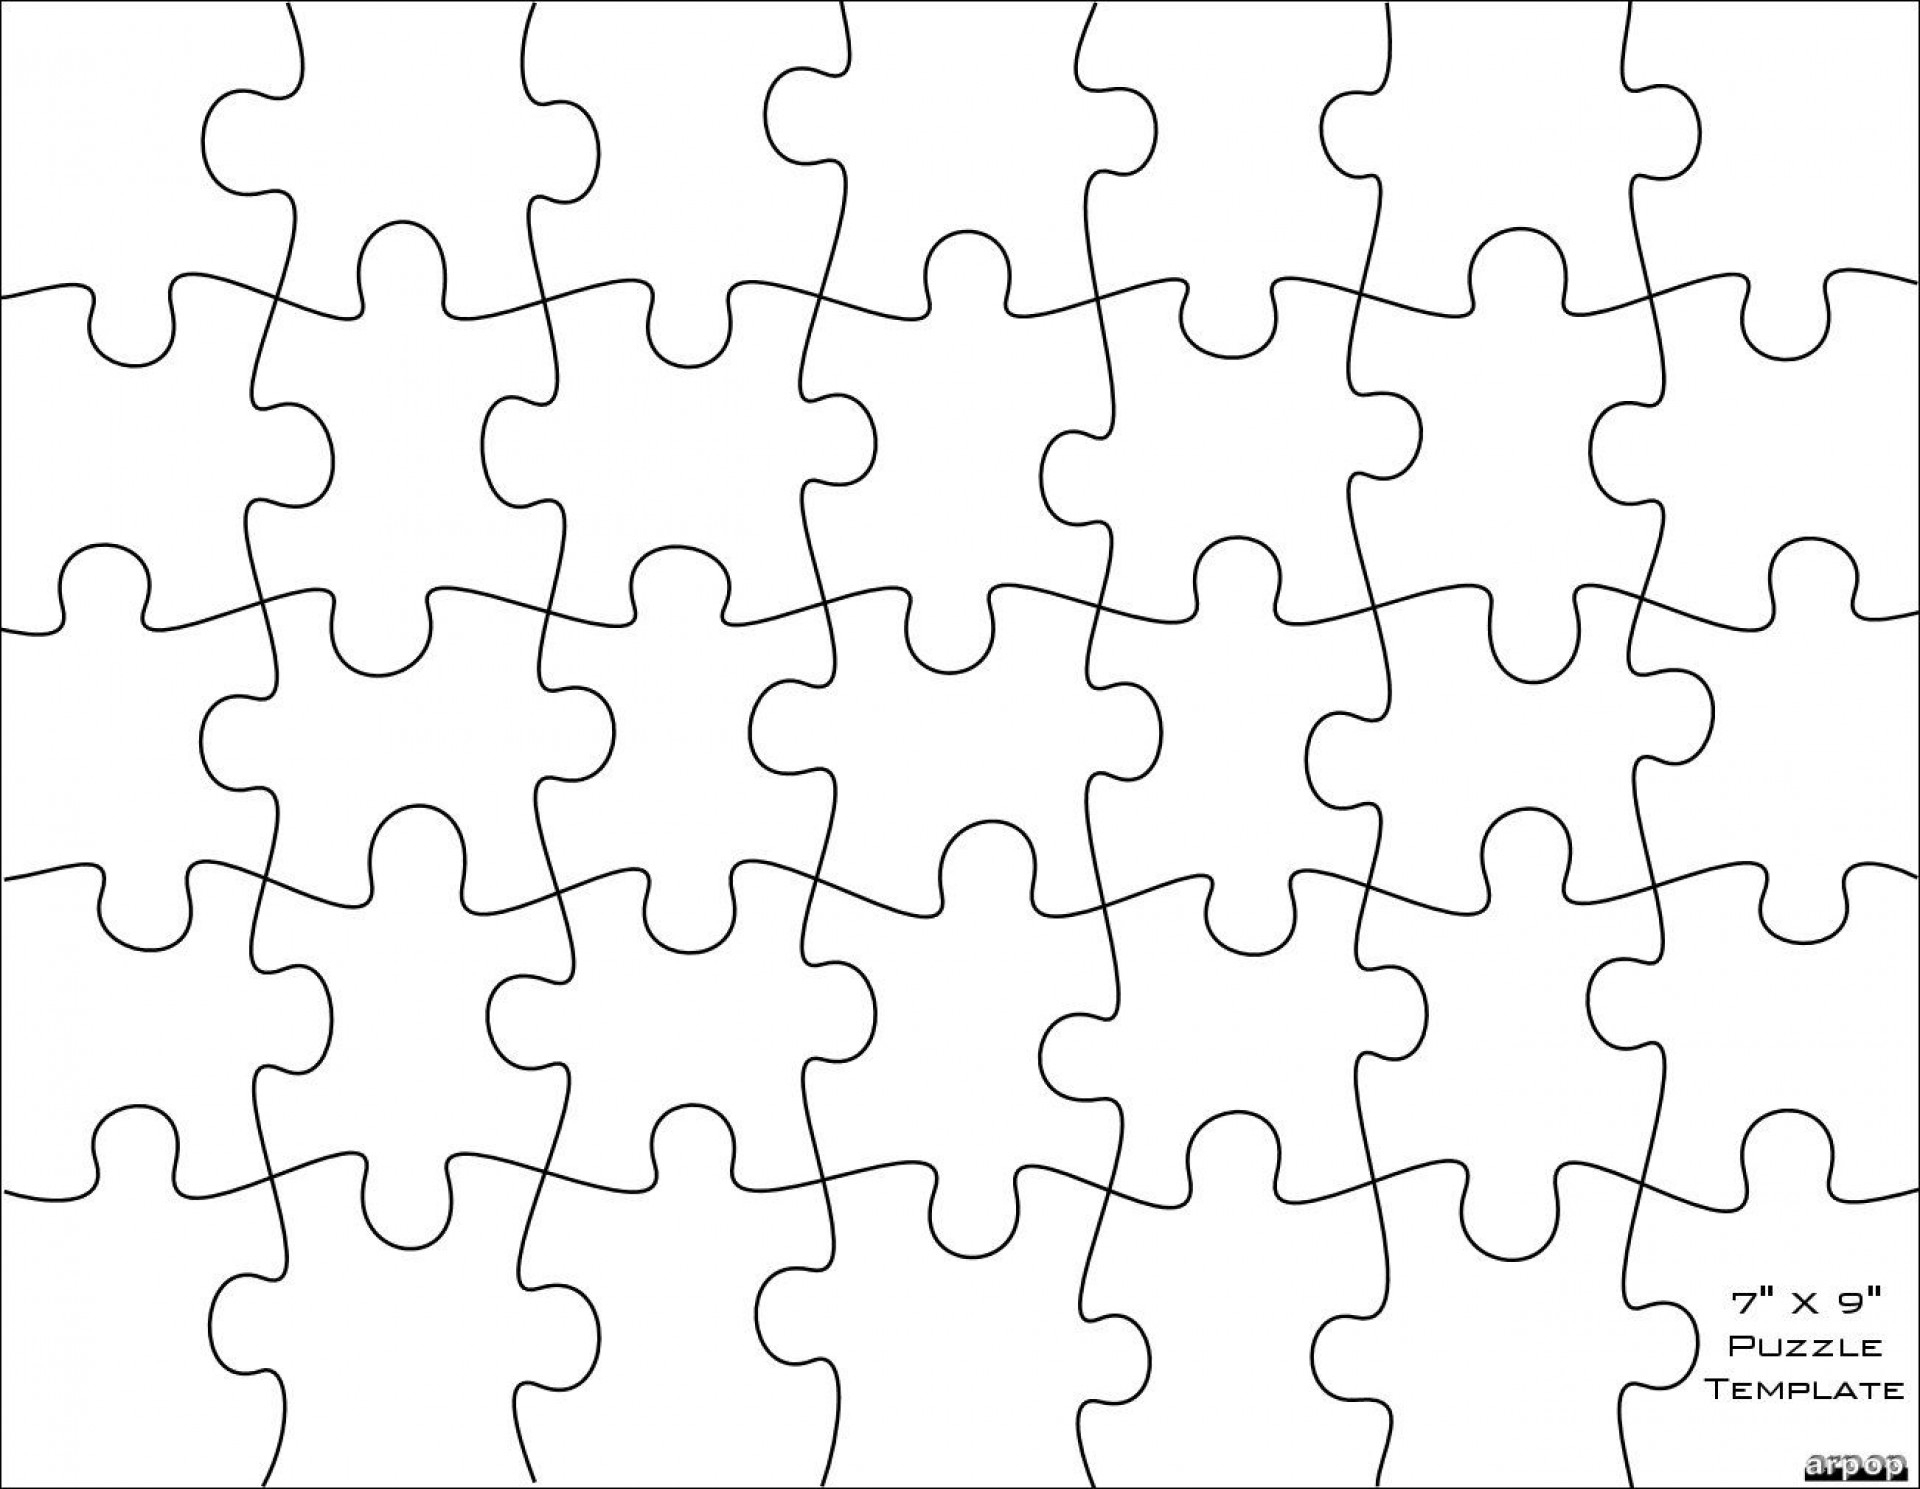 006 Jigsaw Puzzle Blank Template Twenty Pieces Simple Jig Saw - Printable Jigsaw Puzzle Maker Software